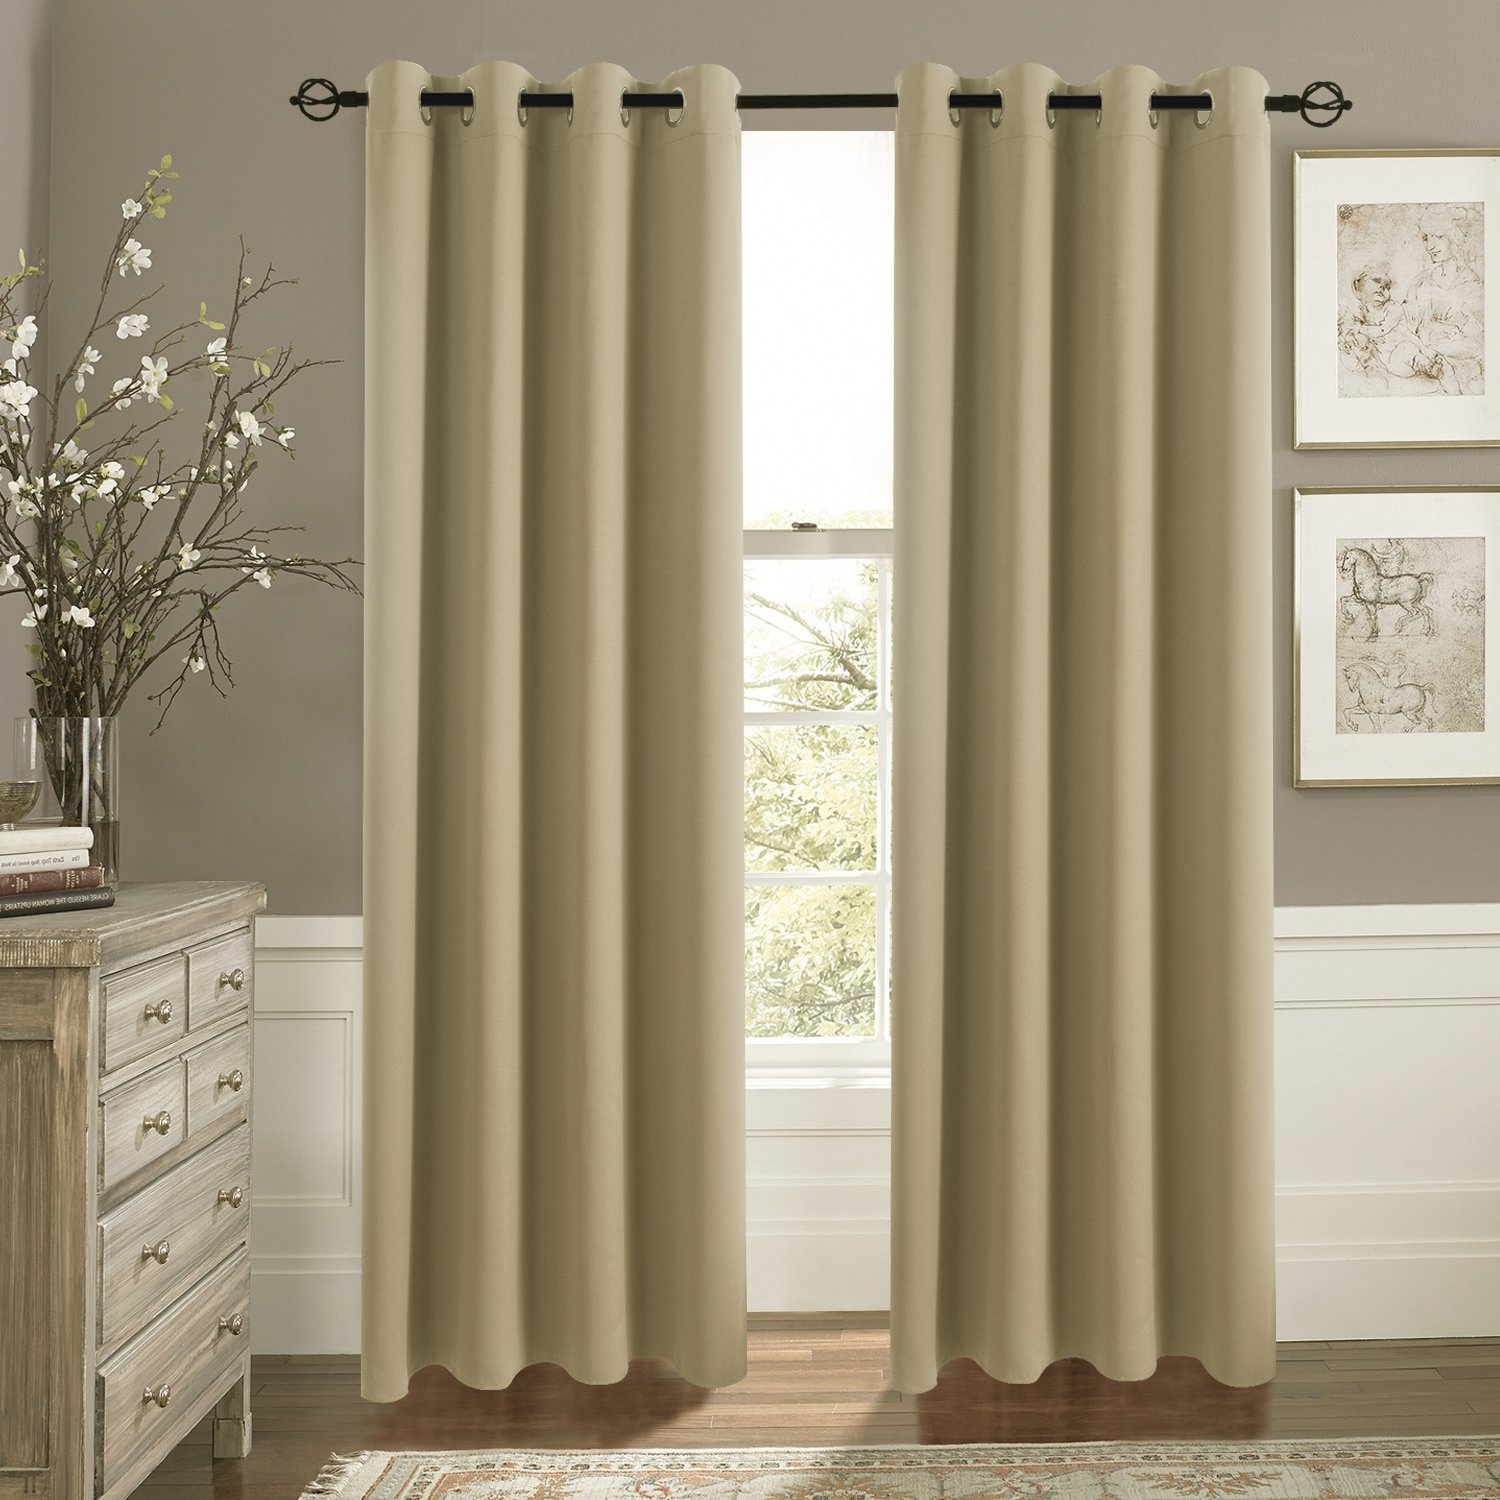 Aquazolax Plain Grommet Thermal Insulated Blackout Curtain Draperies for Living Room Taupe/Khaki